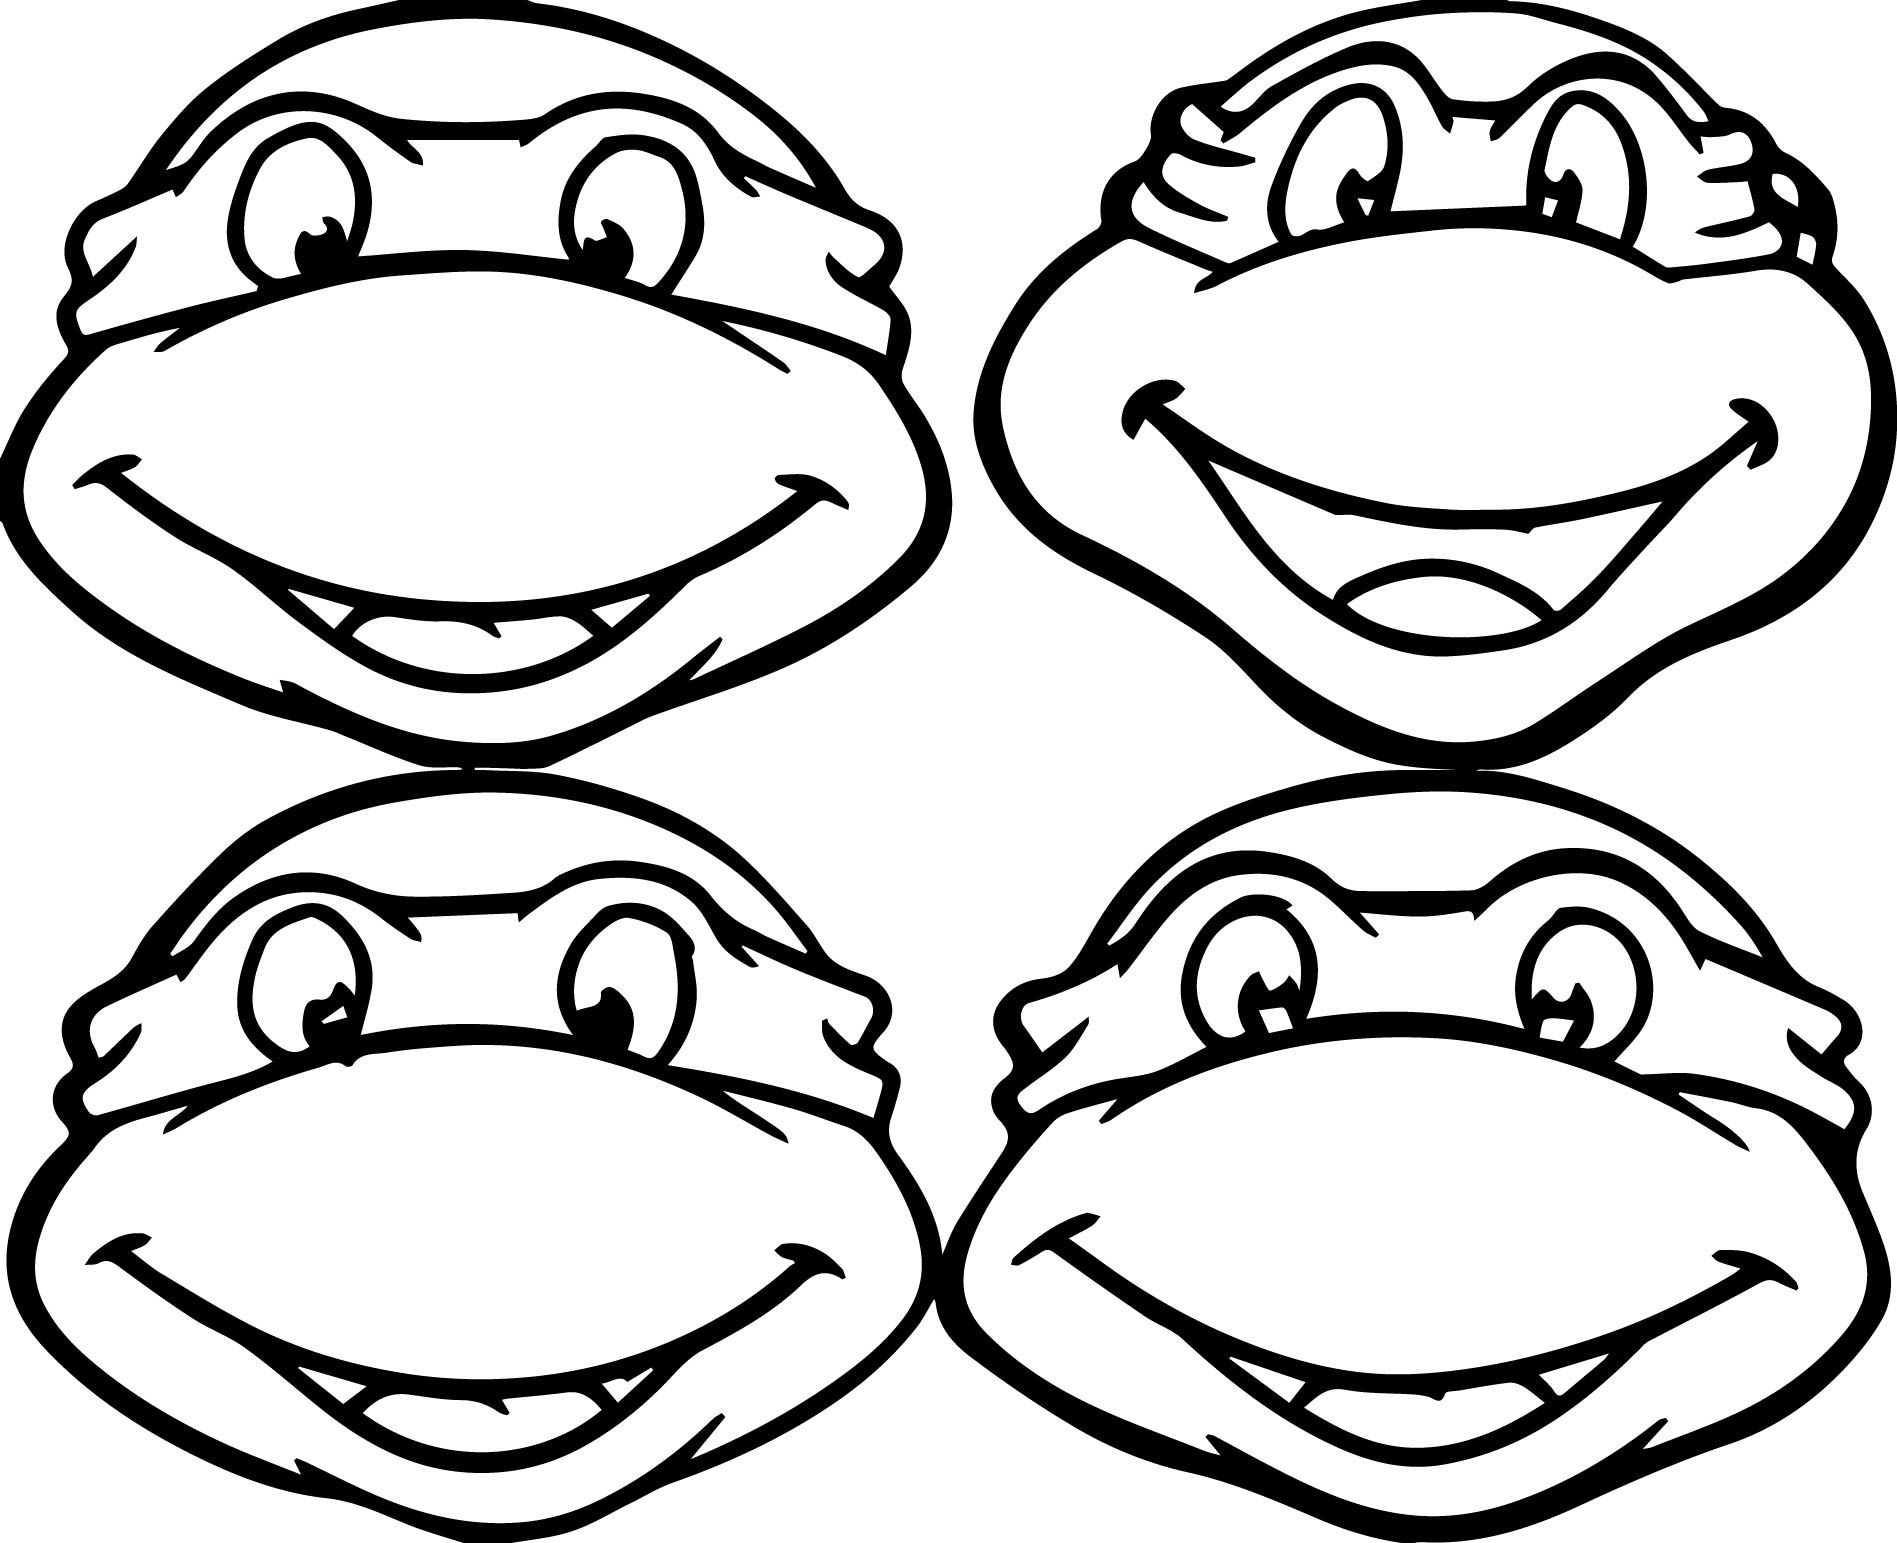 coloring pages turtle turtles to print for free turtles kids coloring pages pages coloring turtle